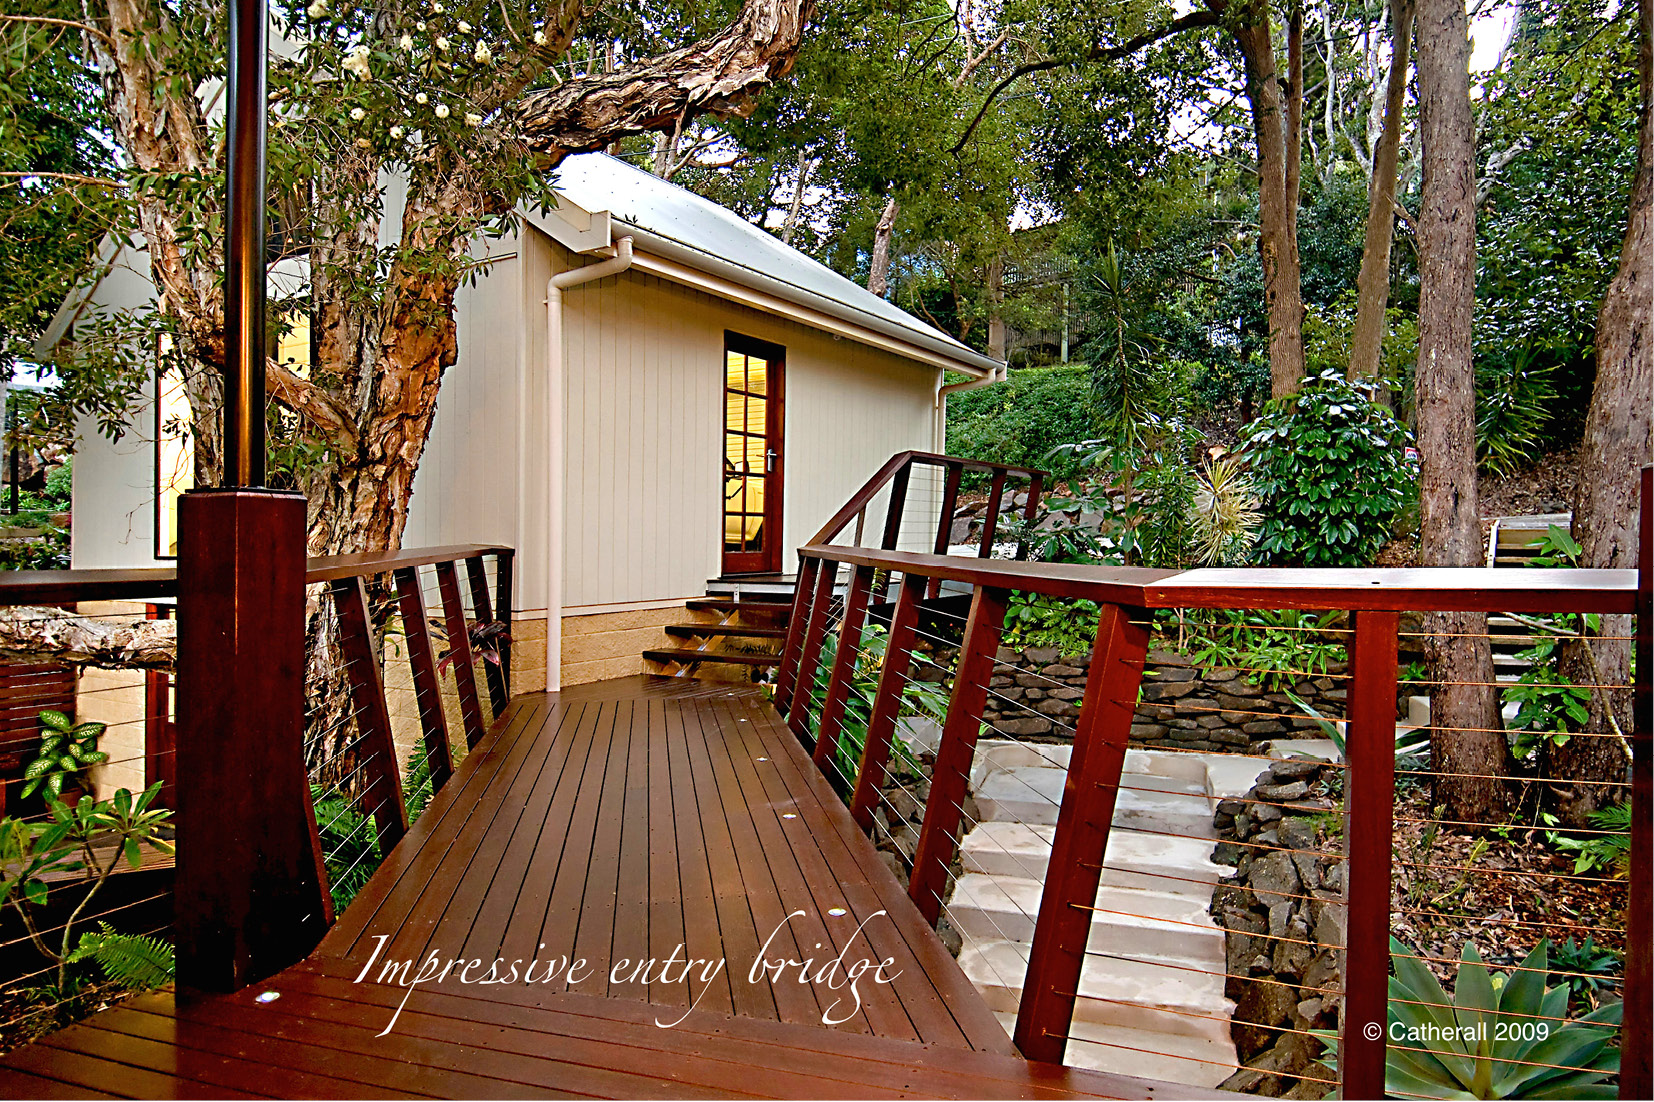 Deck Builder Sunshine Coast - impressive entry